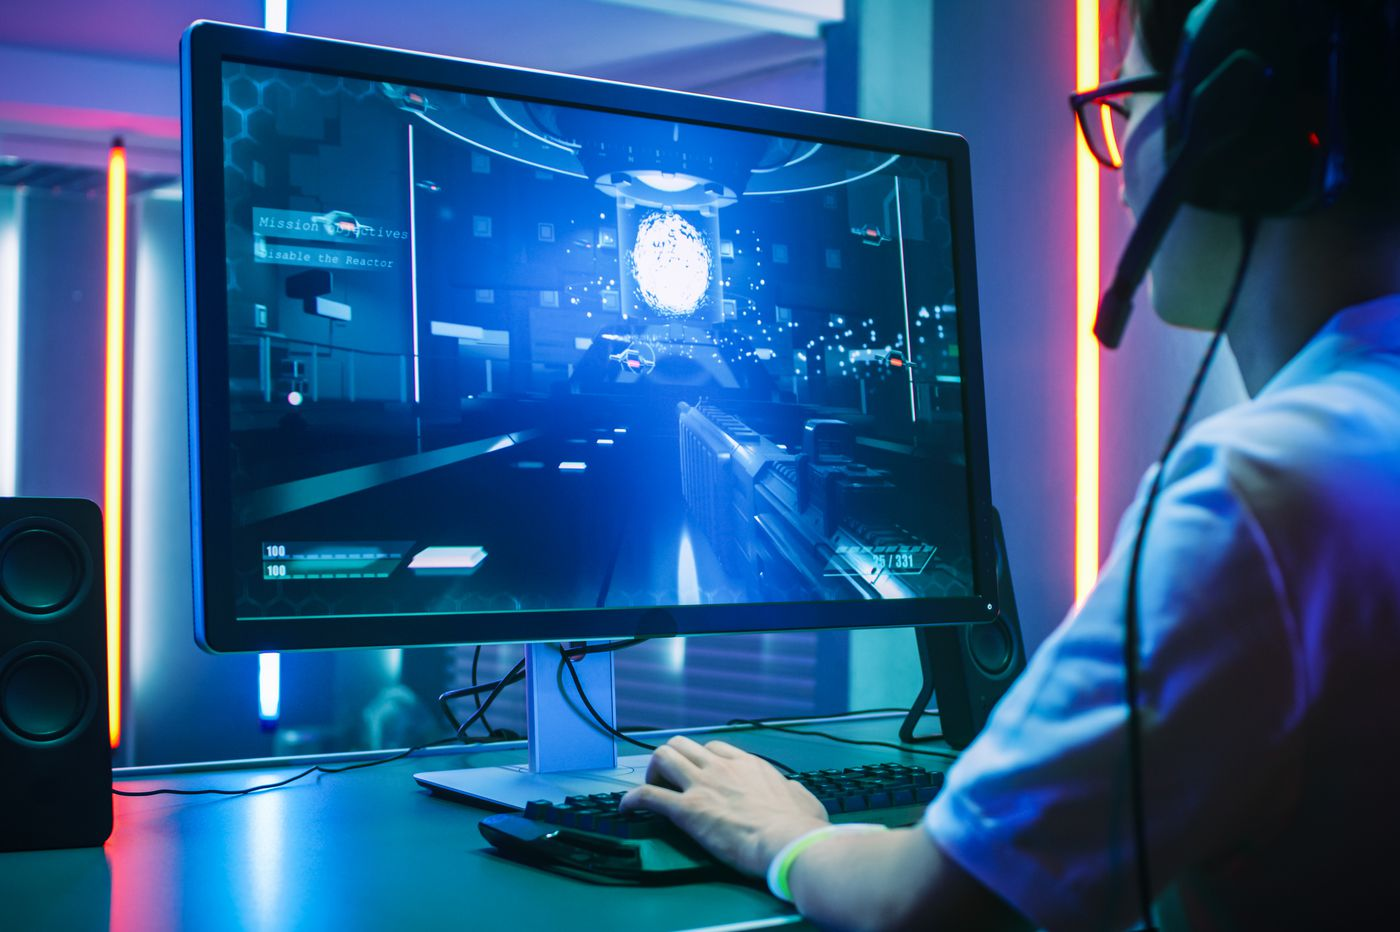 New bill targeting video games won't reduce violence | Opinion